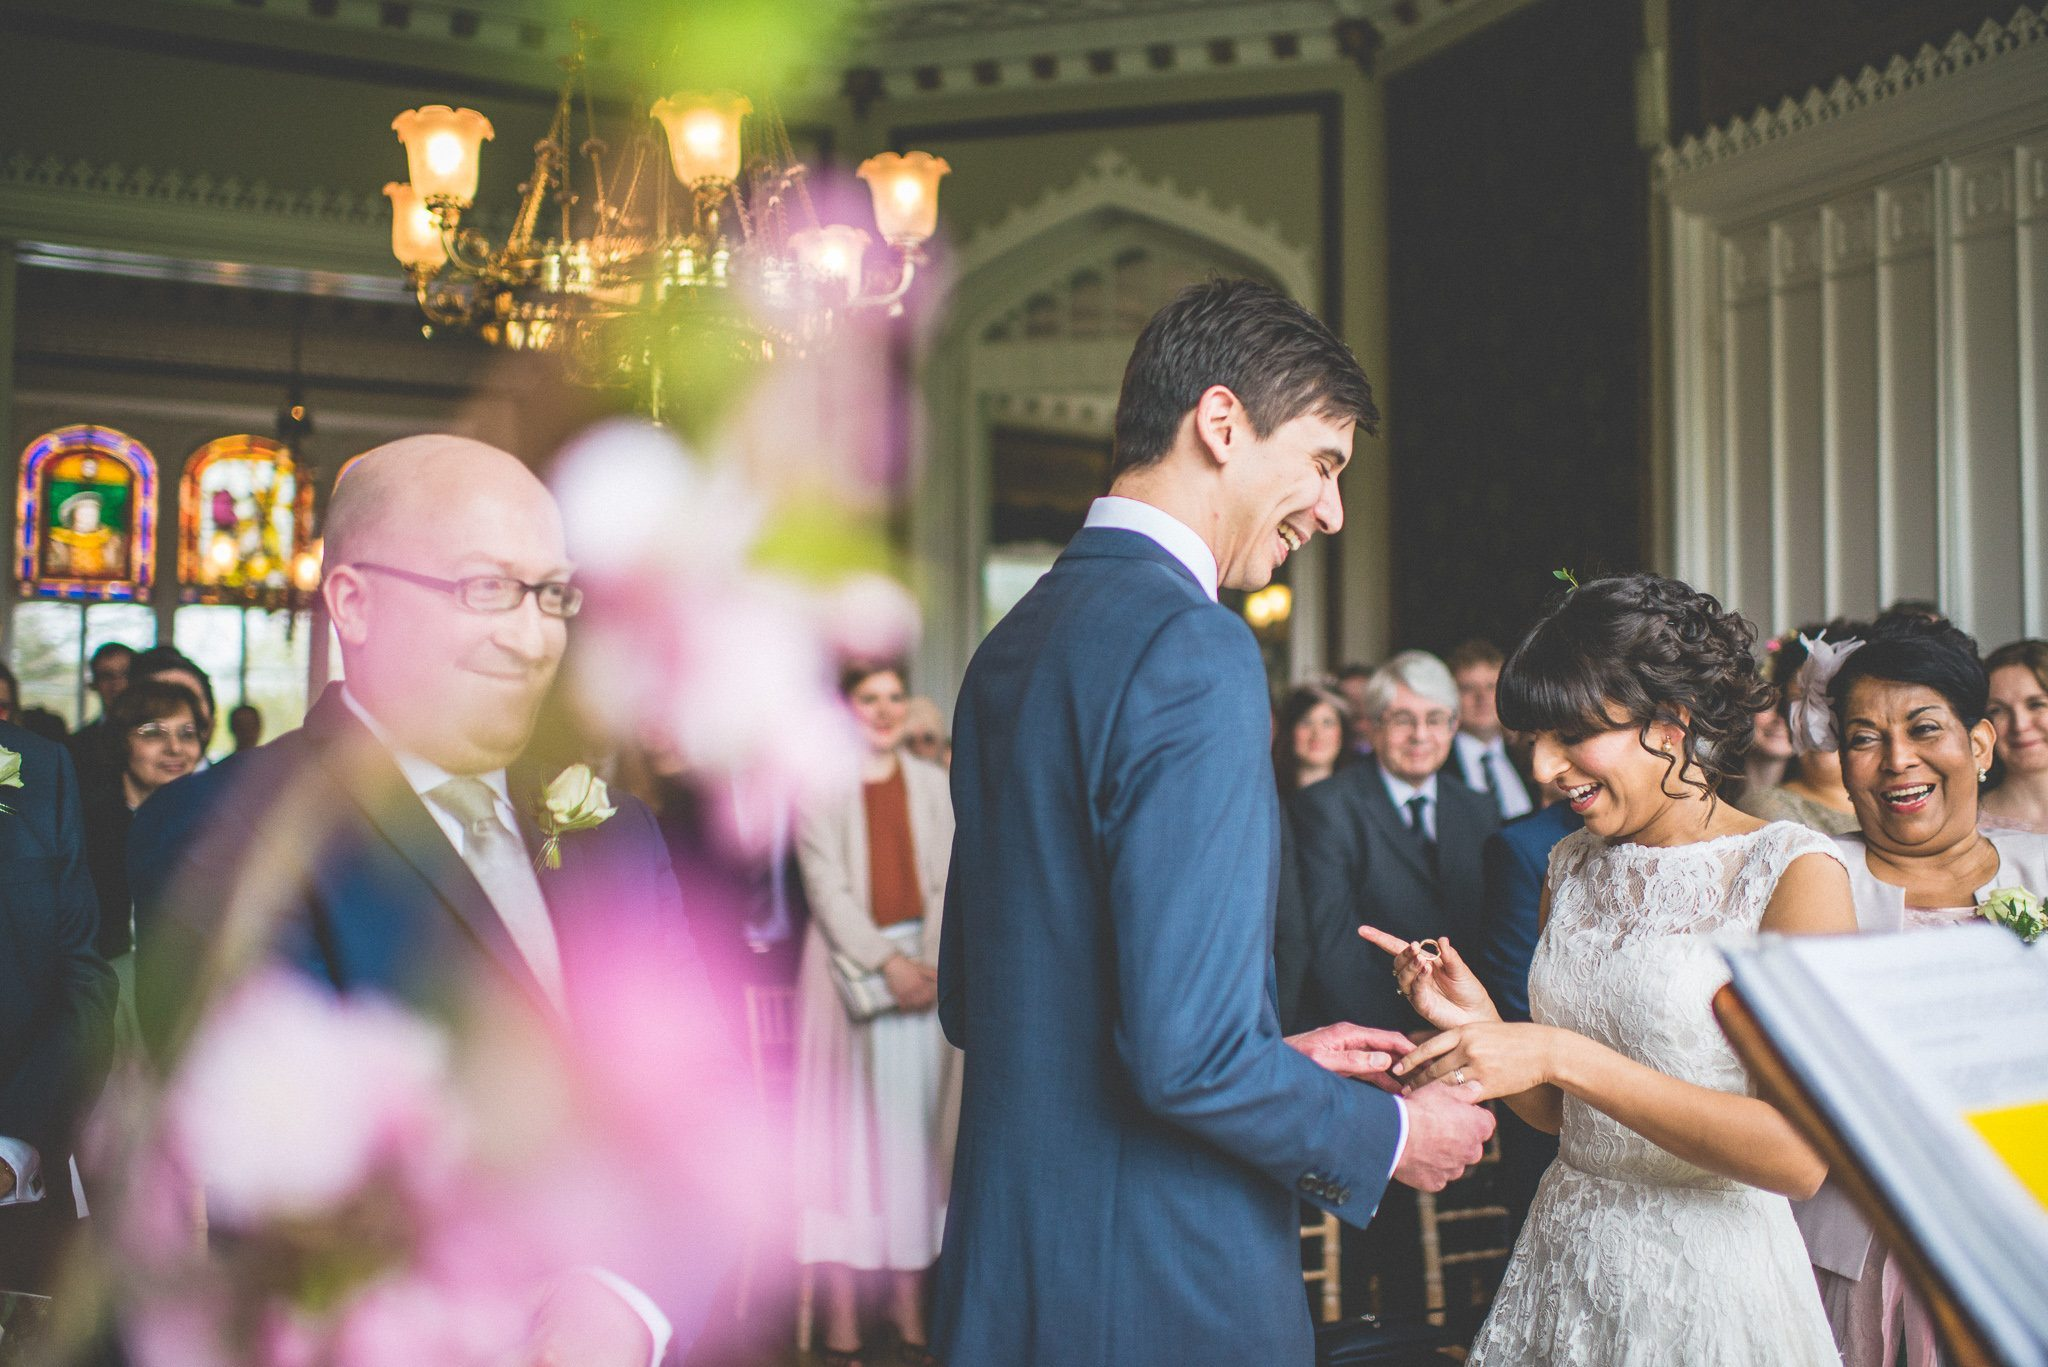 The couple and the congregation laugh, as Jasmin puts a ring on Andy's finger. A pink floral arrangement is in soft focus in the foreground.